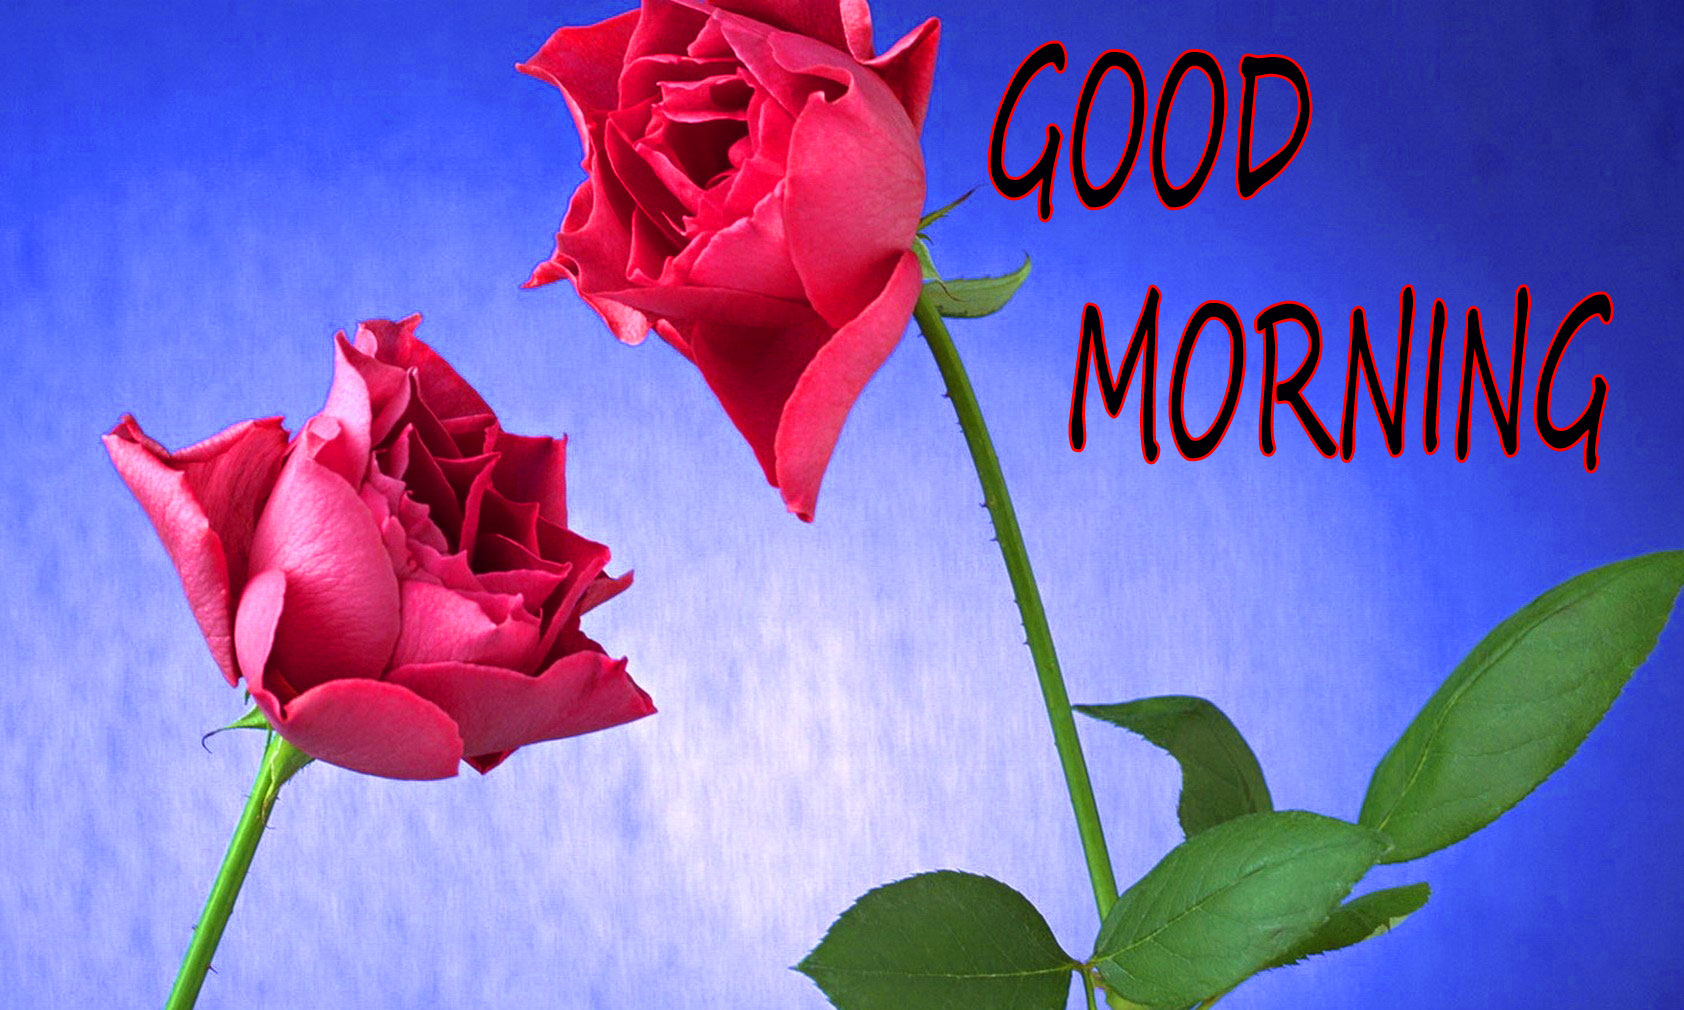 GOOD MORNING IMAGE WITH BEAUTIFUL FLOWERS NATURE WALLPAPER PICS